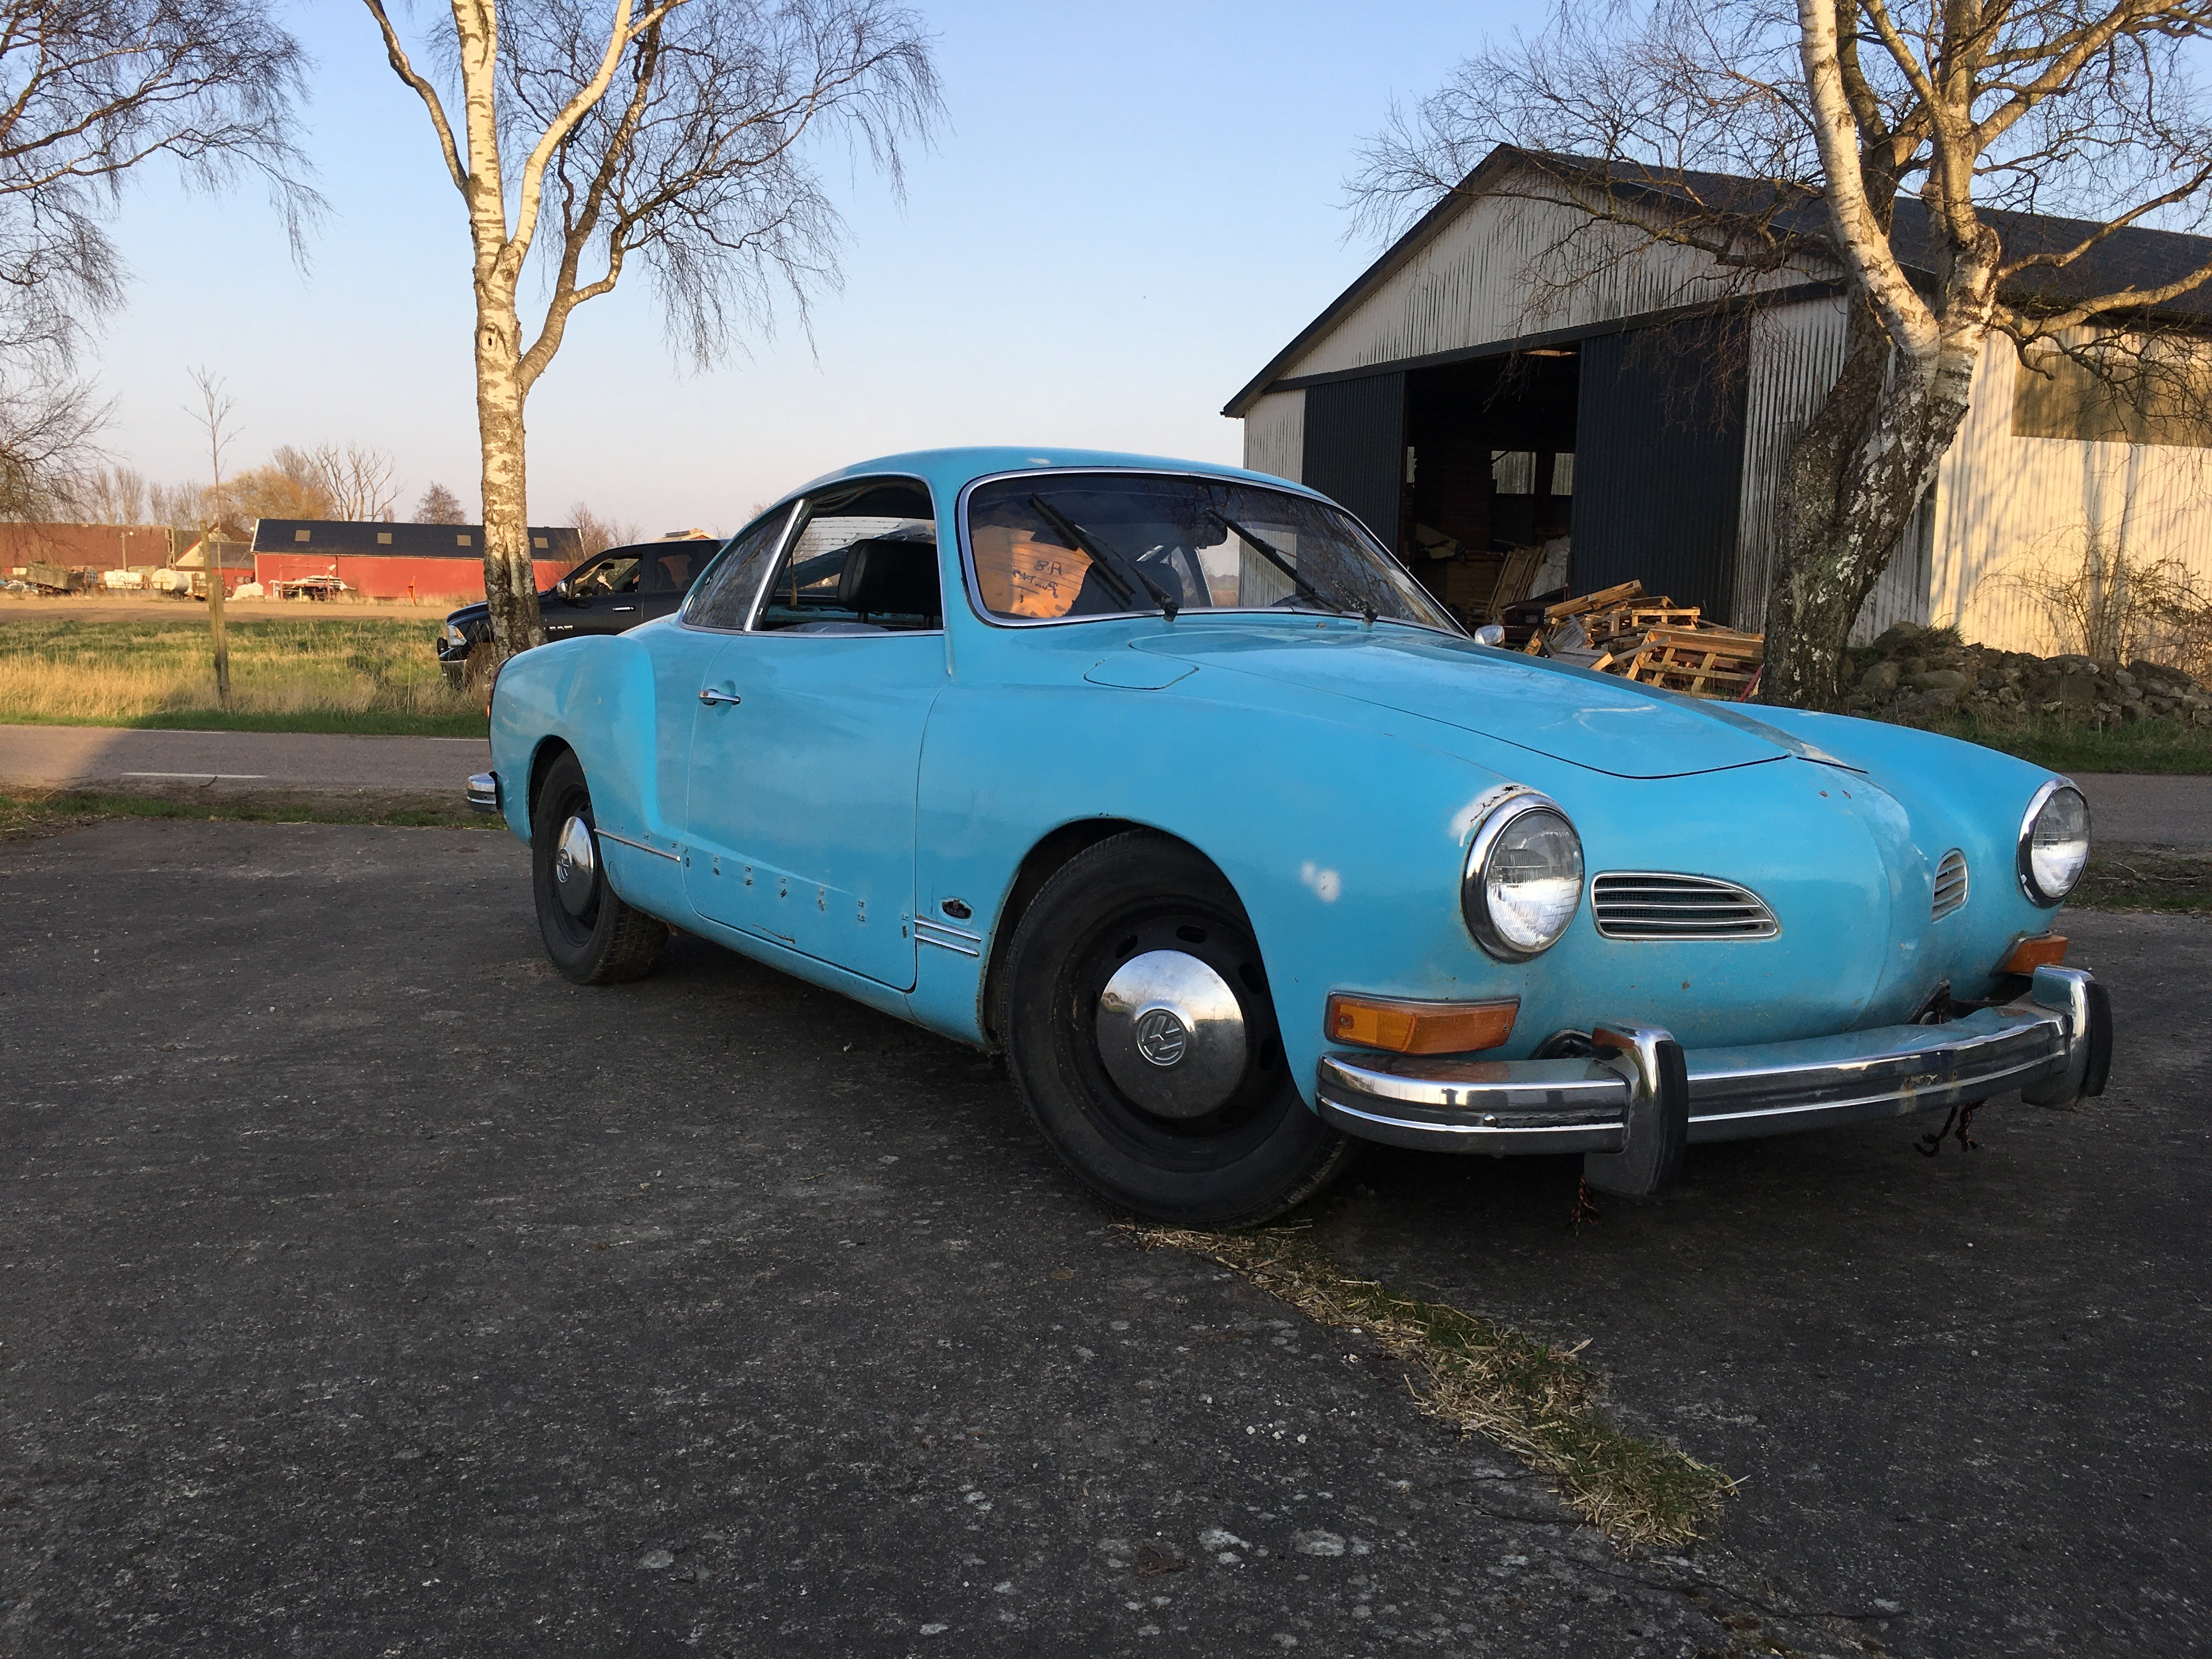 a project march trailer auctions lot for no on img listing sale karmann reserve bat bring volkswagen sold ghia